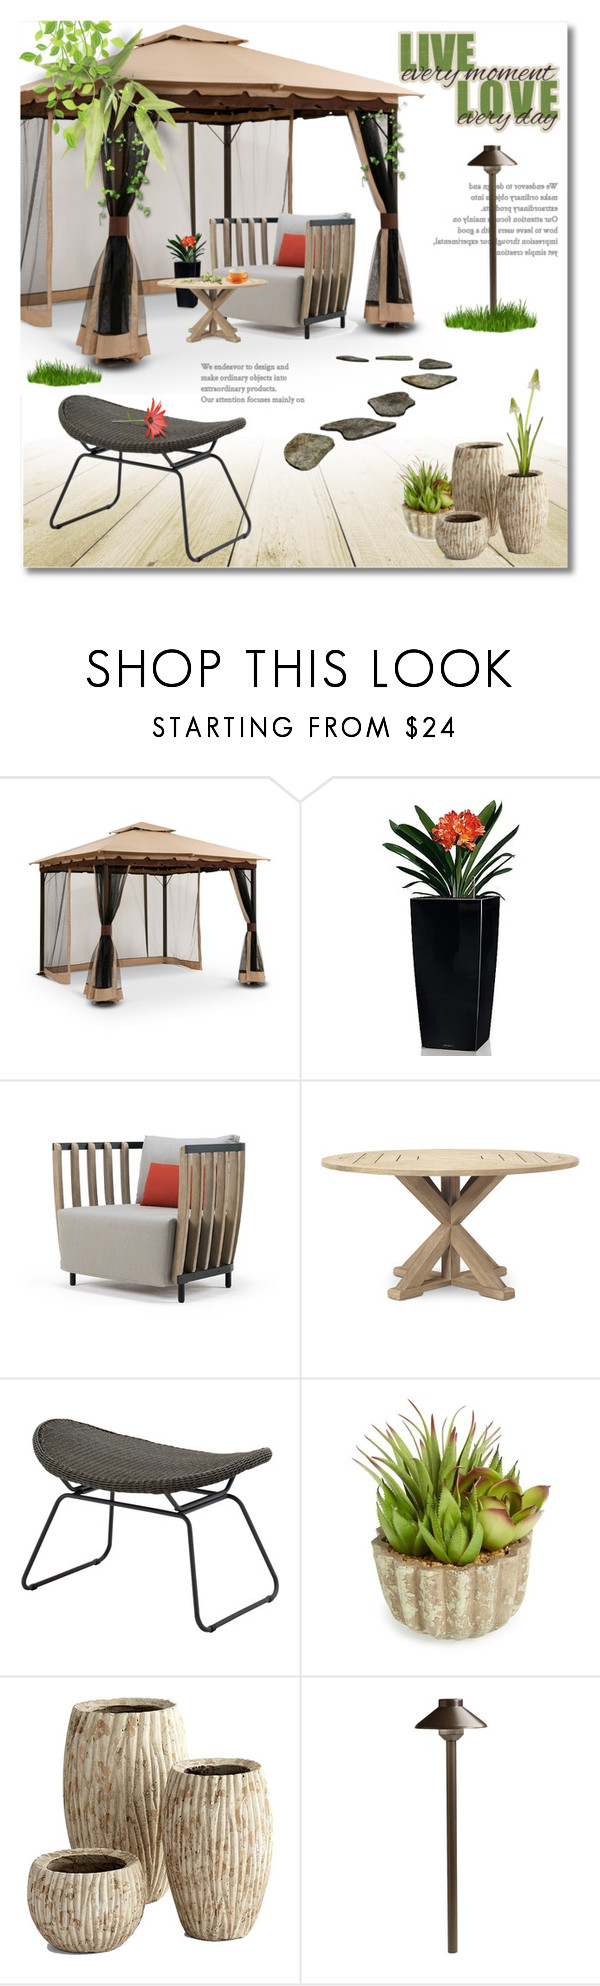 """""""Bali gazebo"""" by limass ❤ liked on Polyvore featuring interior, interiors, interior design, home, home decor, interior decorating, Lechuza, Ethimo, Gloster and Allstate Floral"""